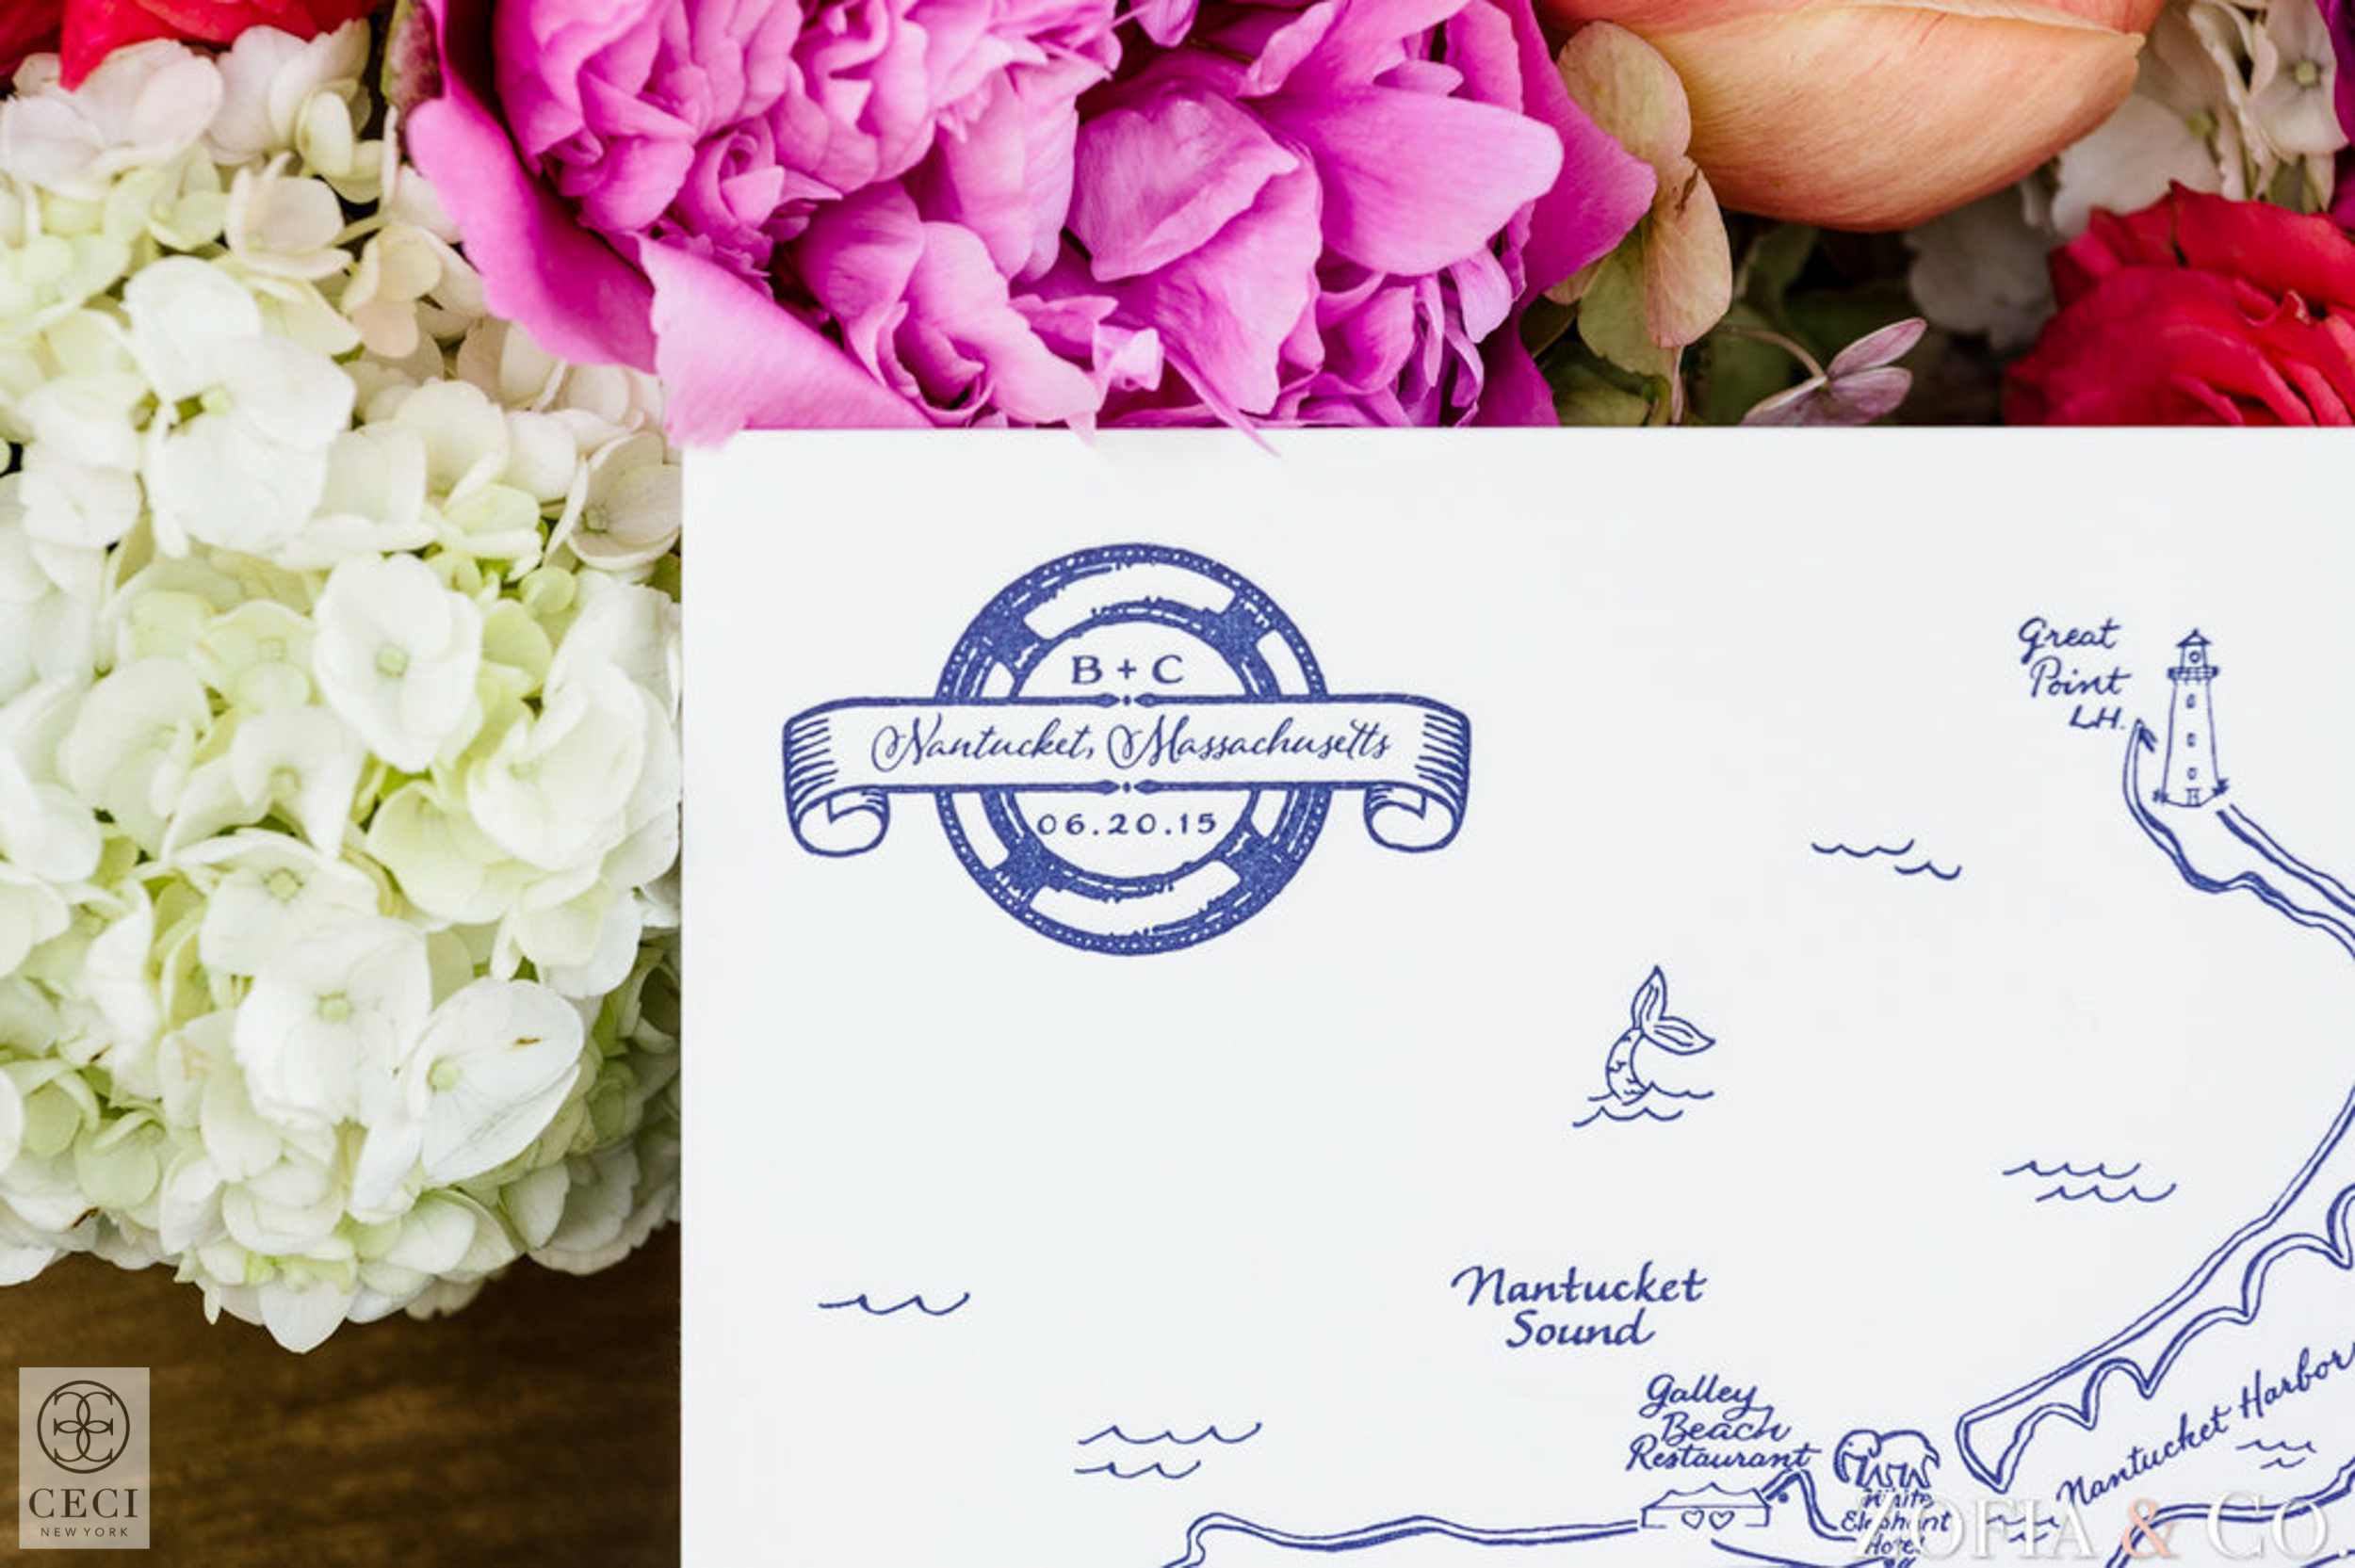 Ceci_New_York_Custom_Luxury_Wedding_LaserCut_Stationery_Personalized_Couture_Foil_Stamping_Black_Chic_-21 copy.jpg